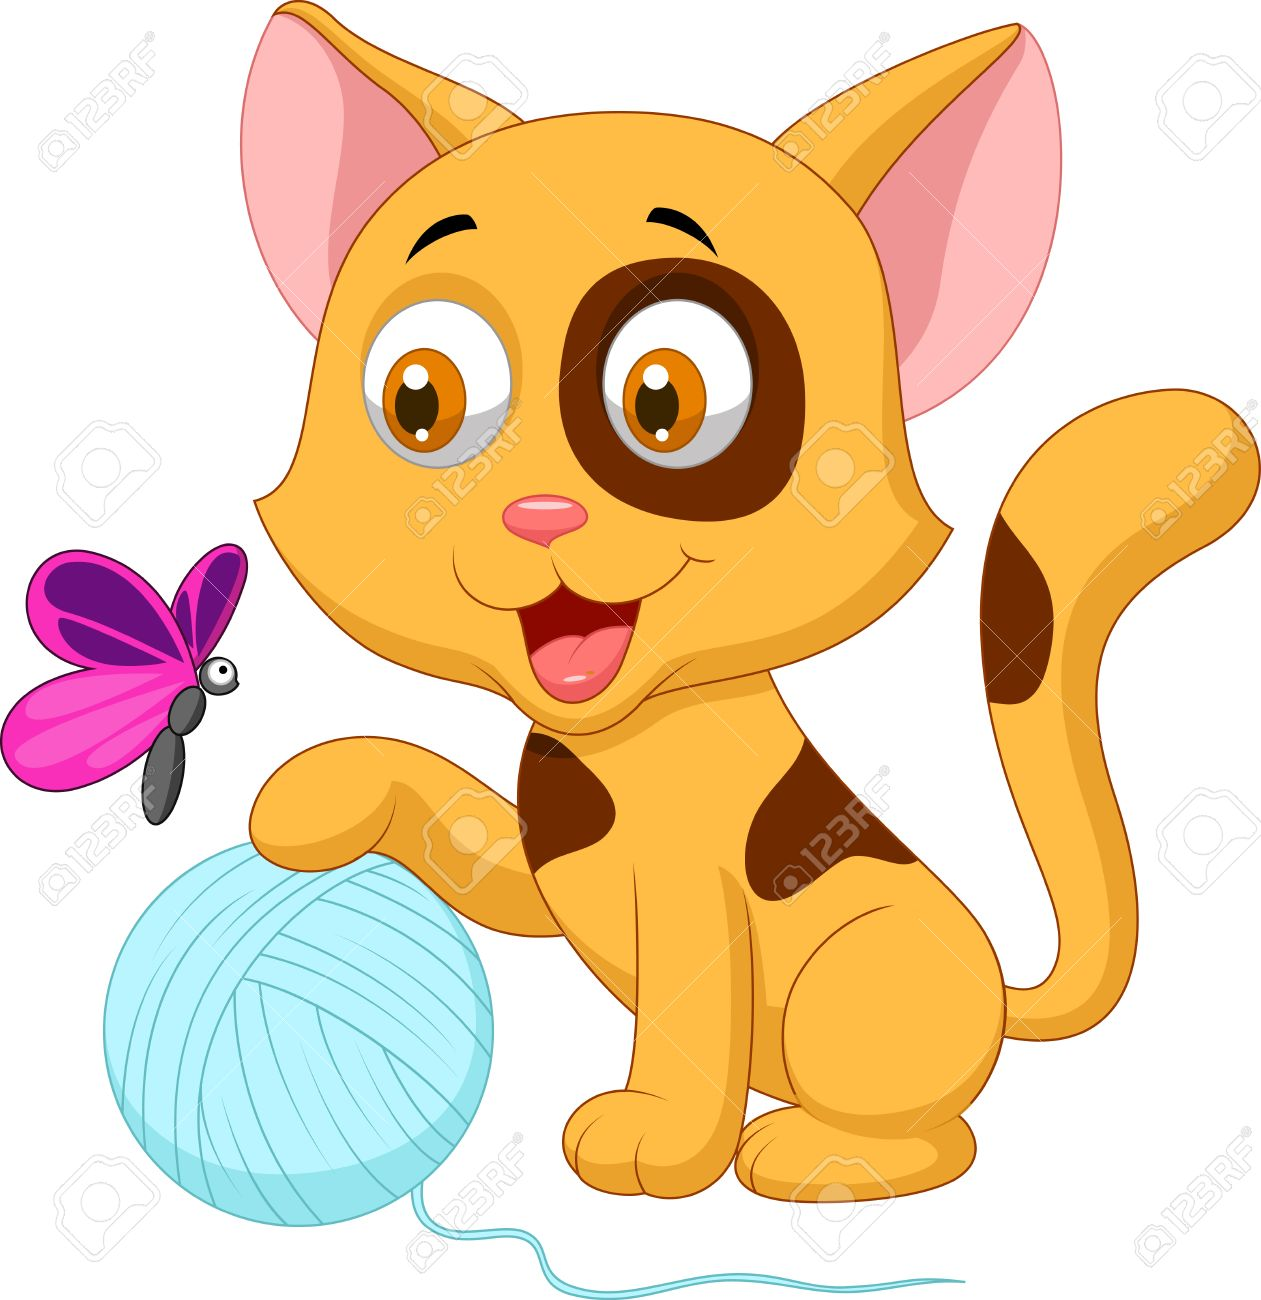 1261x1300 Cute Cat Cartoon Playing With Ball Of Yarn And Butterfly Royalty